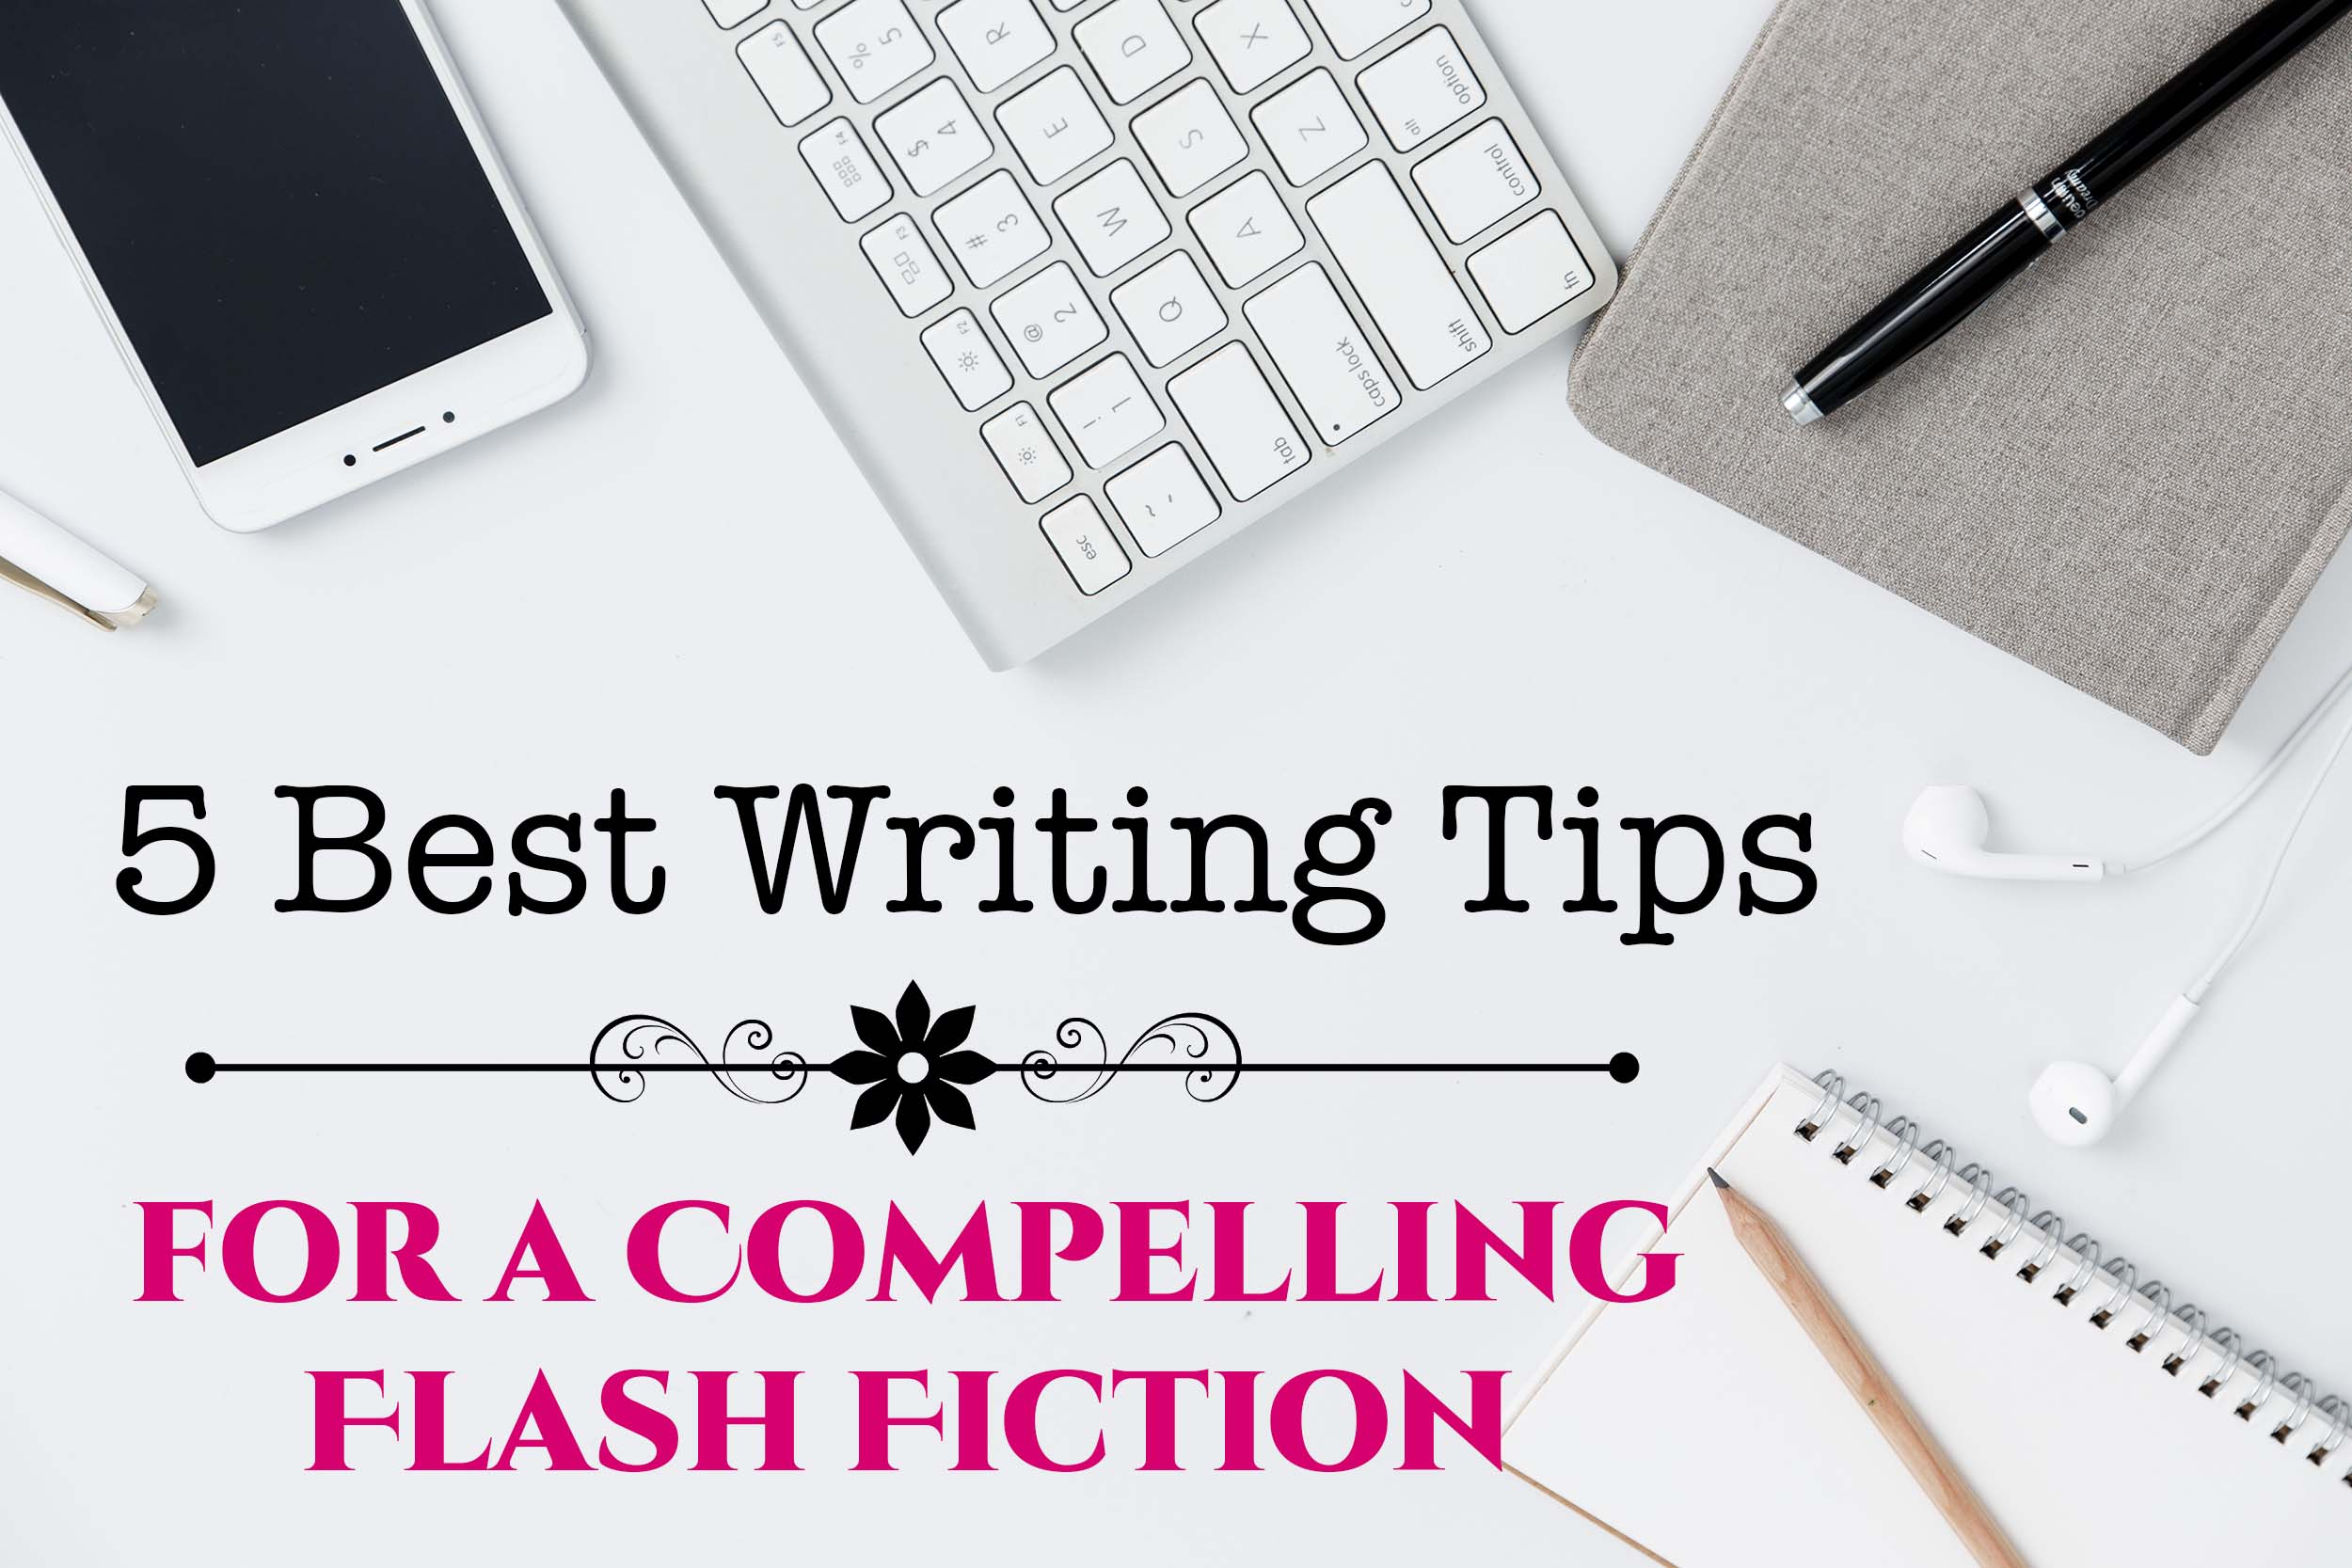 Five Best Writing Tips for a Compelling Flash Fiction